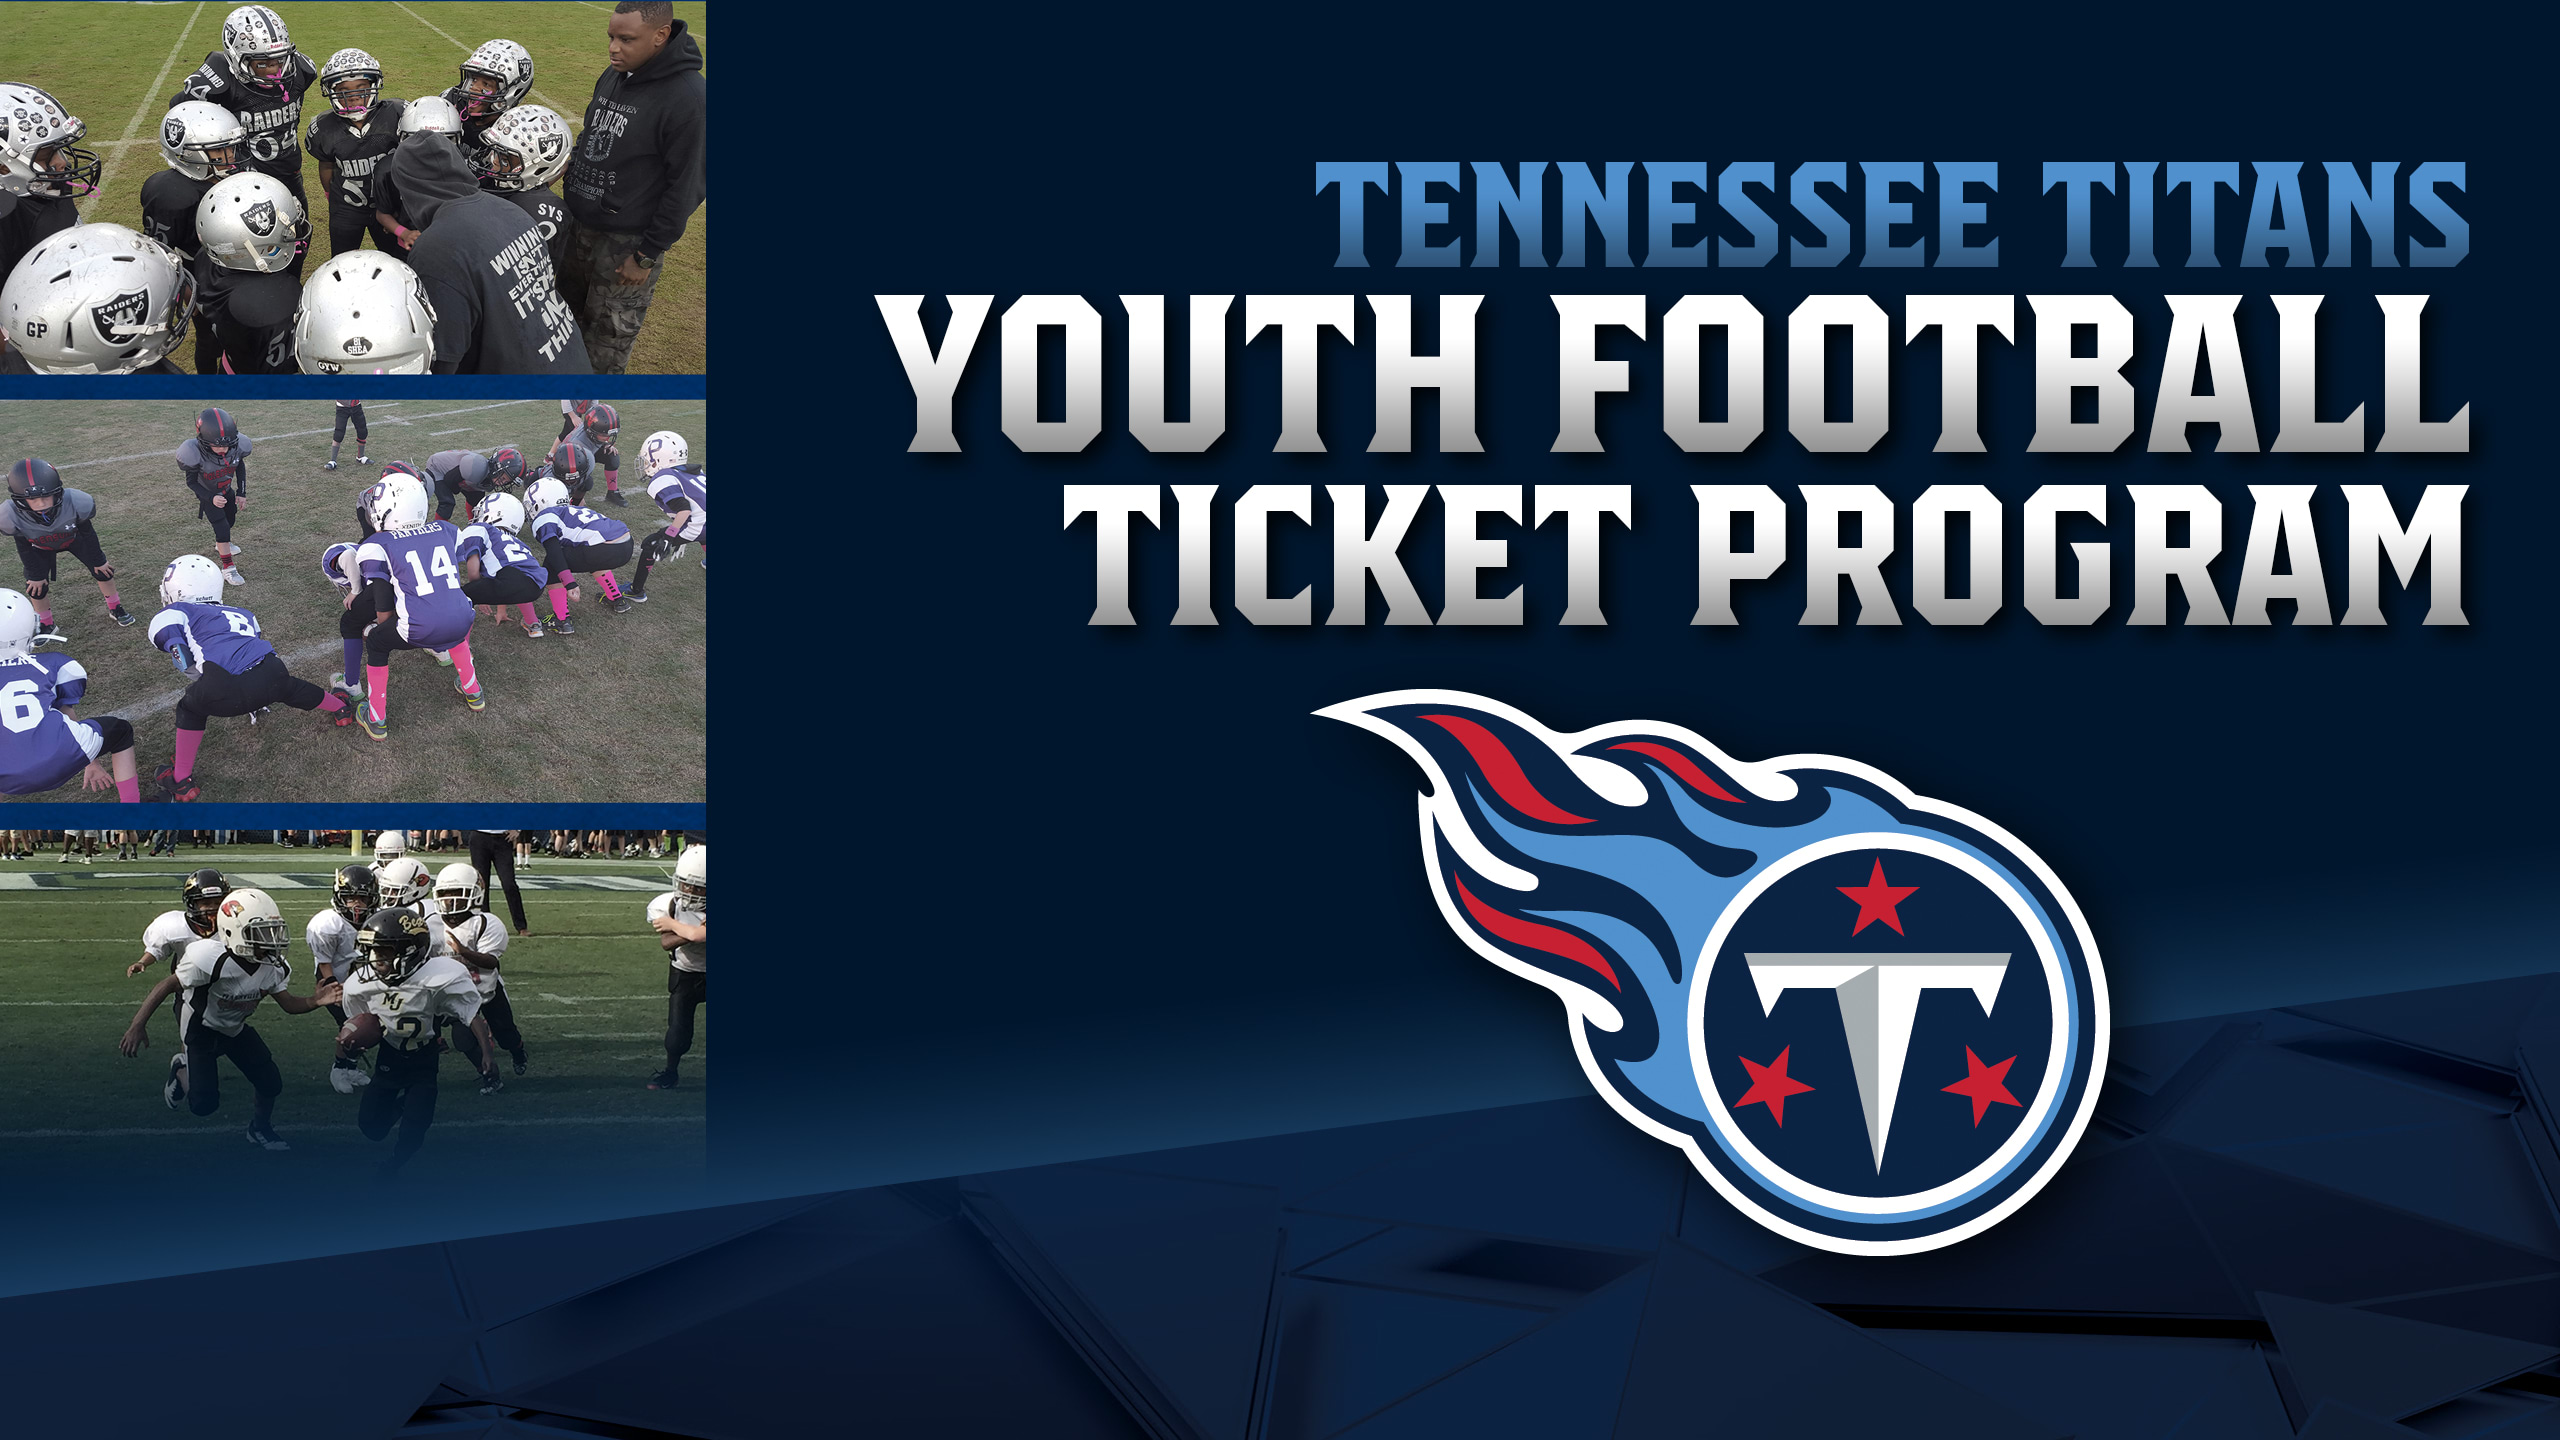 Youth Football Ticket Program